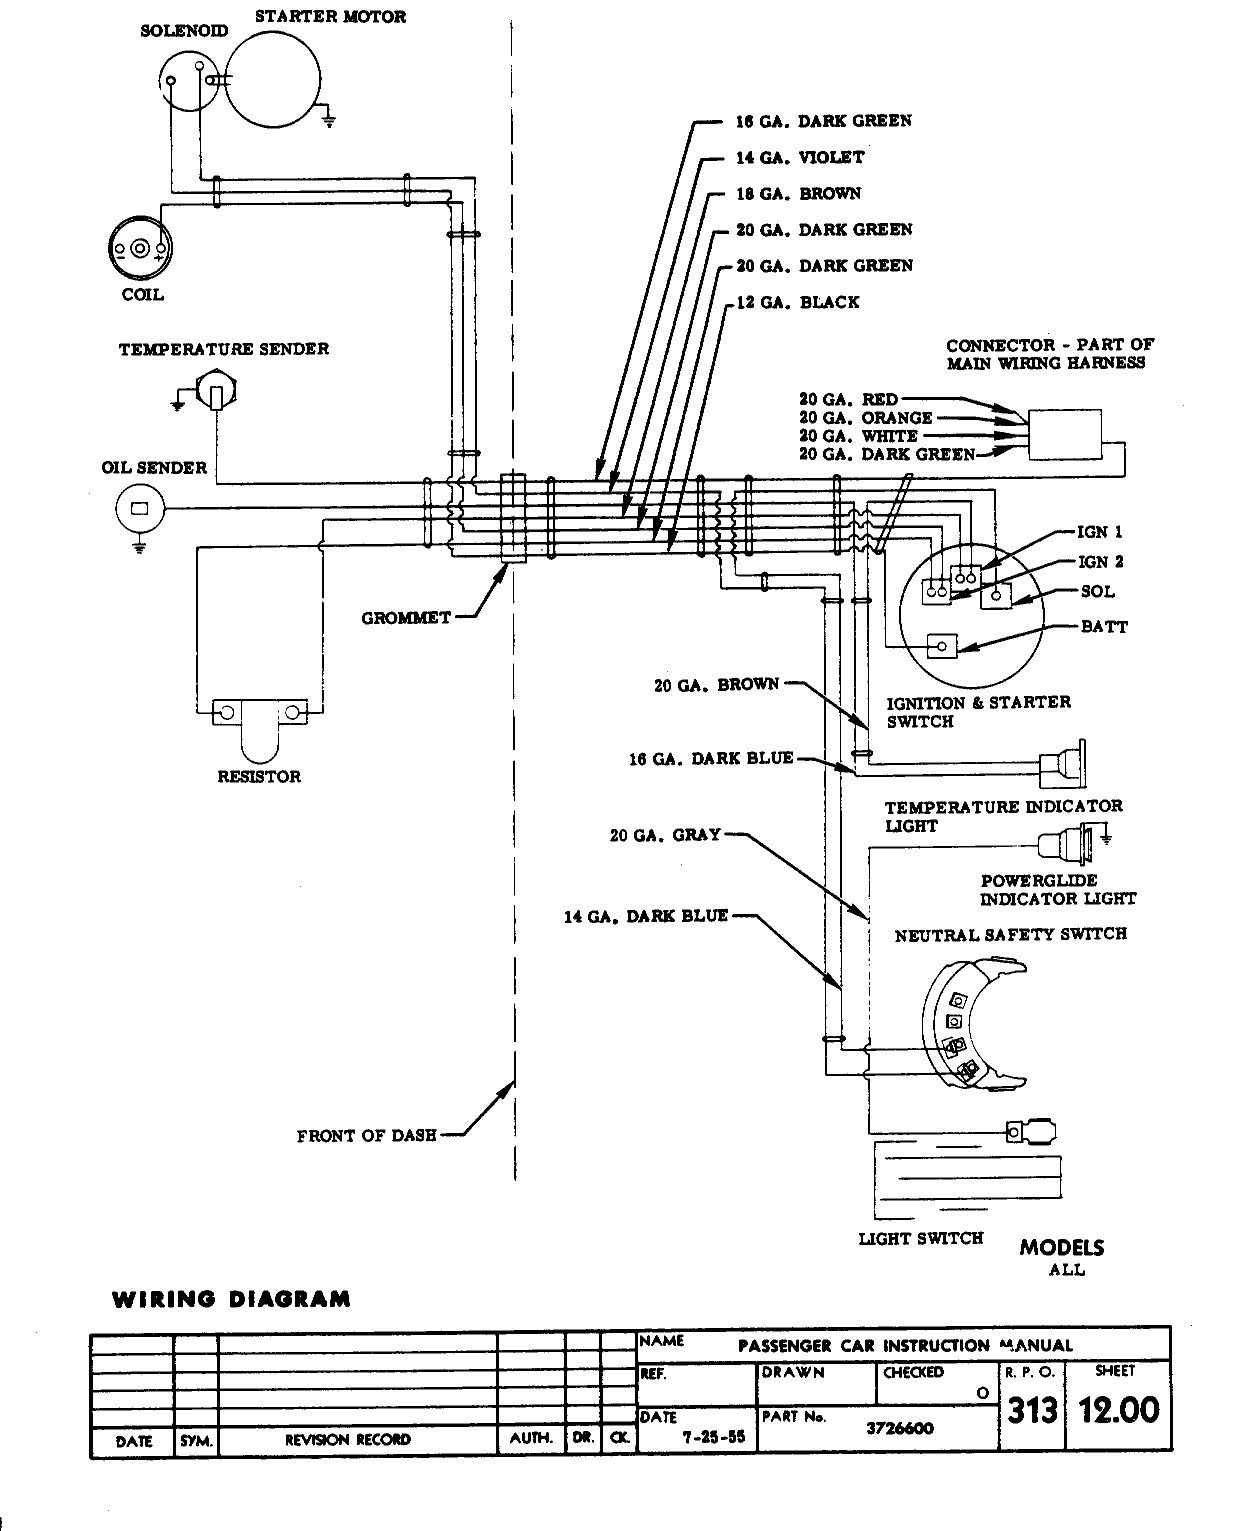 Universal Neutral Safety Switch Wiring Diagram | Wiring Diagrams